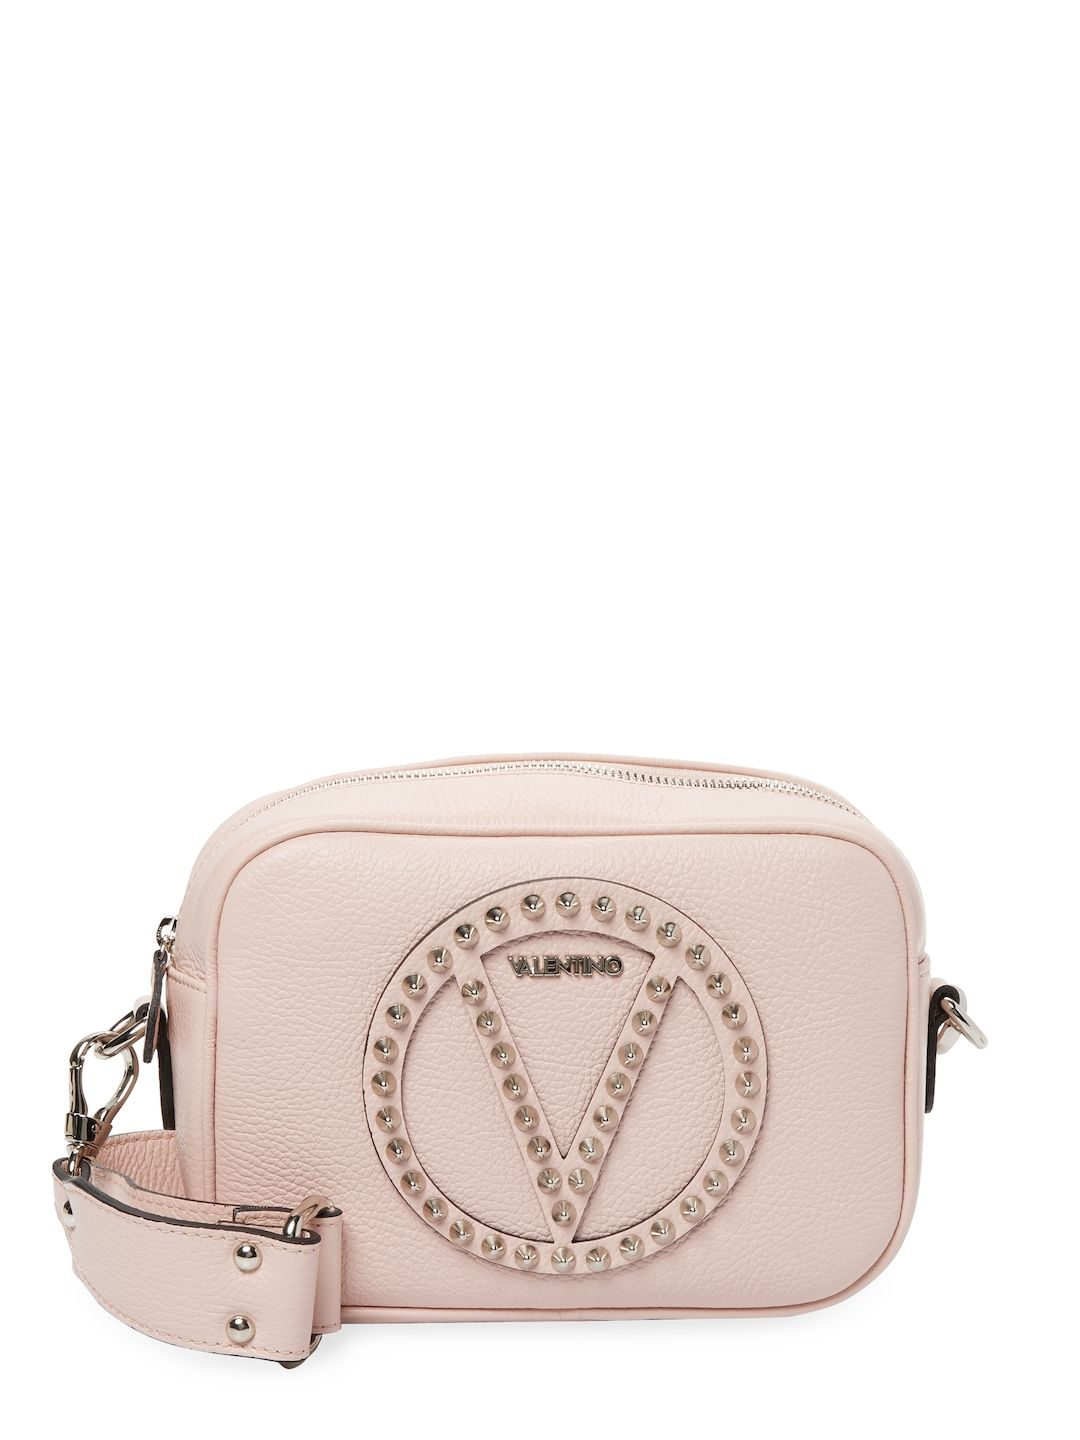 399358a280a VALENTINO BY MARIO VALENTINO MIA ROCK STUDDED CROSSBODY BAG.  #valentinobymariovalentino #bags #shoulder bags #leather #crossbody #